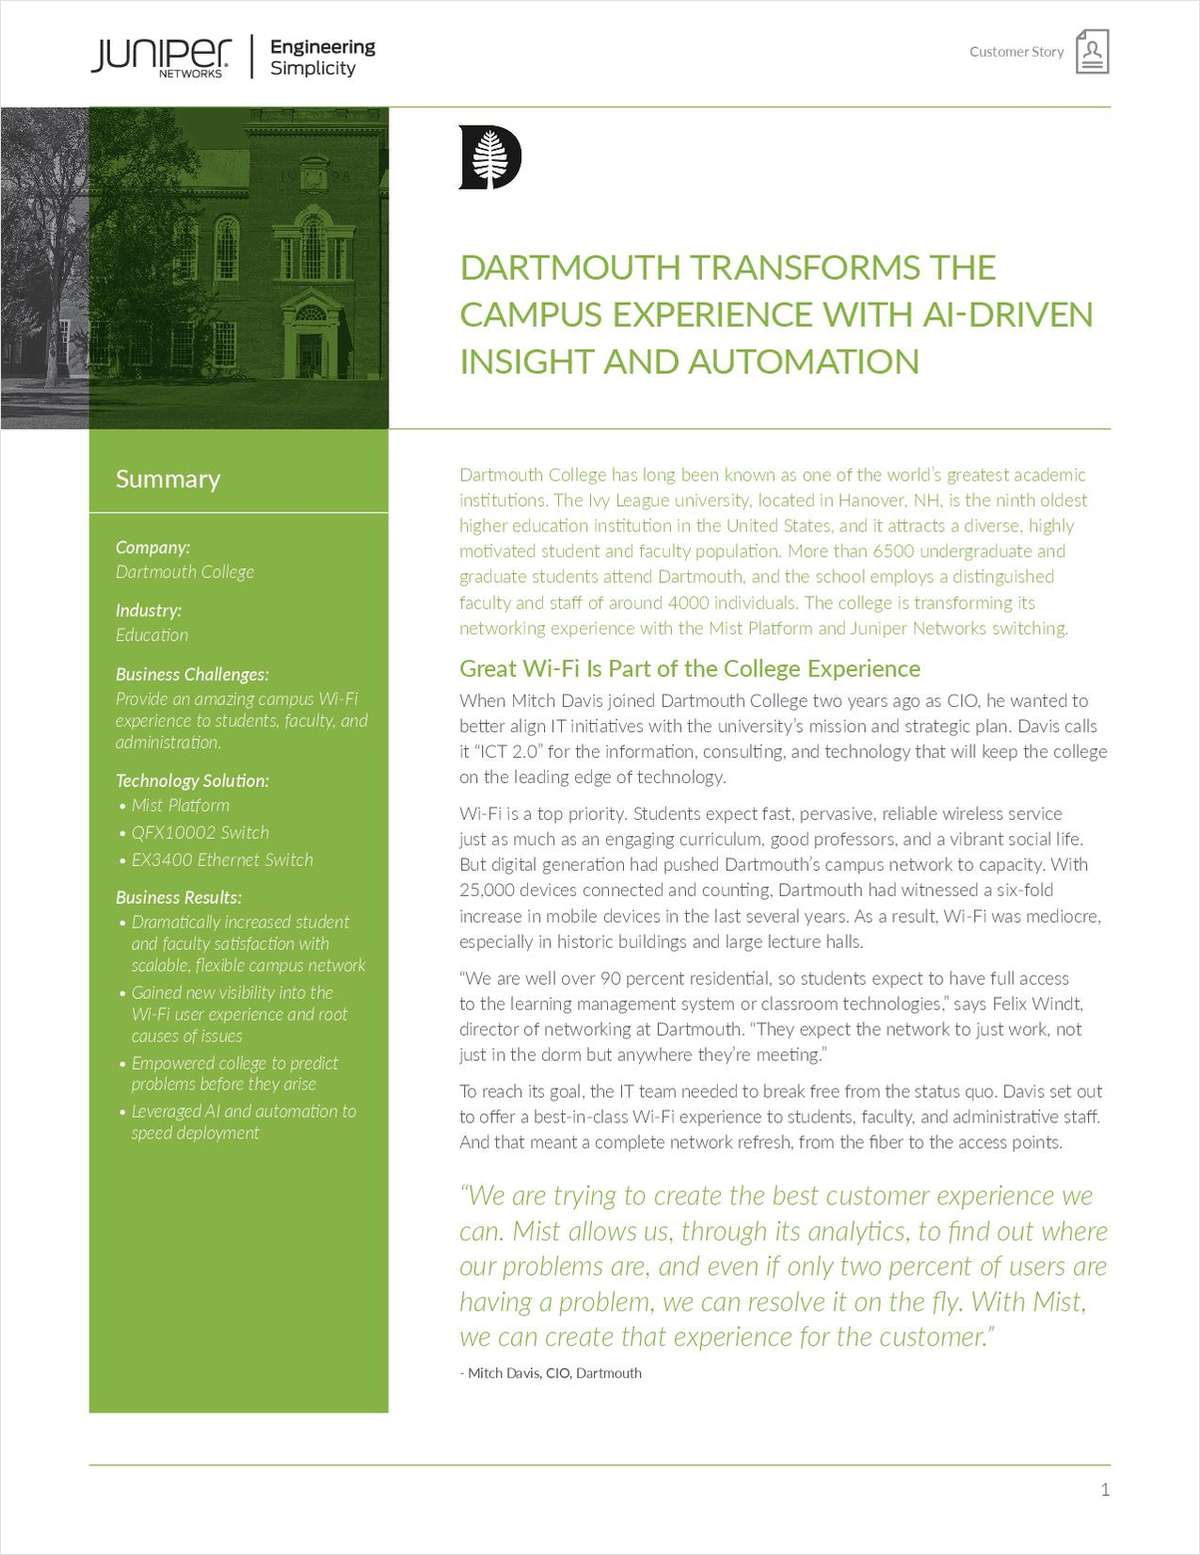 Dartmouth Transforms the Campus Experience with AI-Driven Insight and Automation